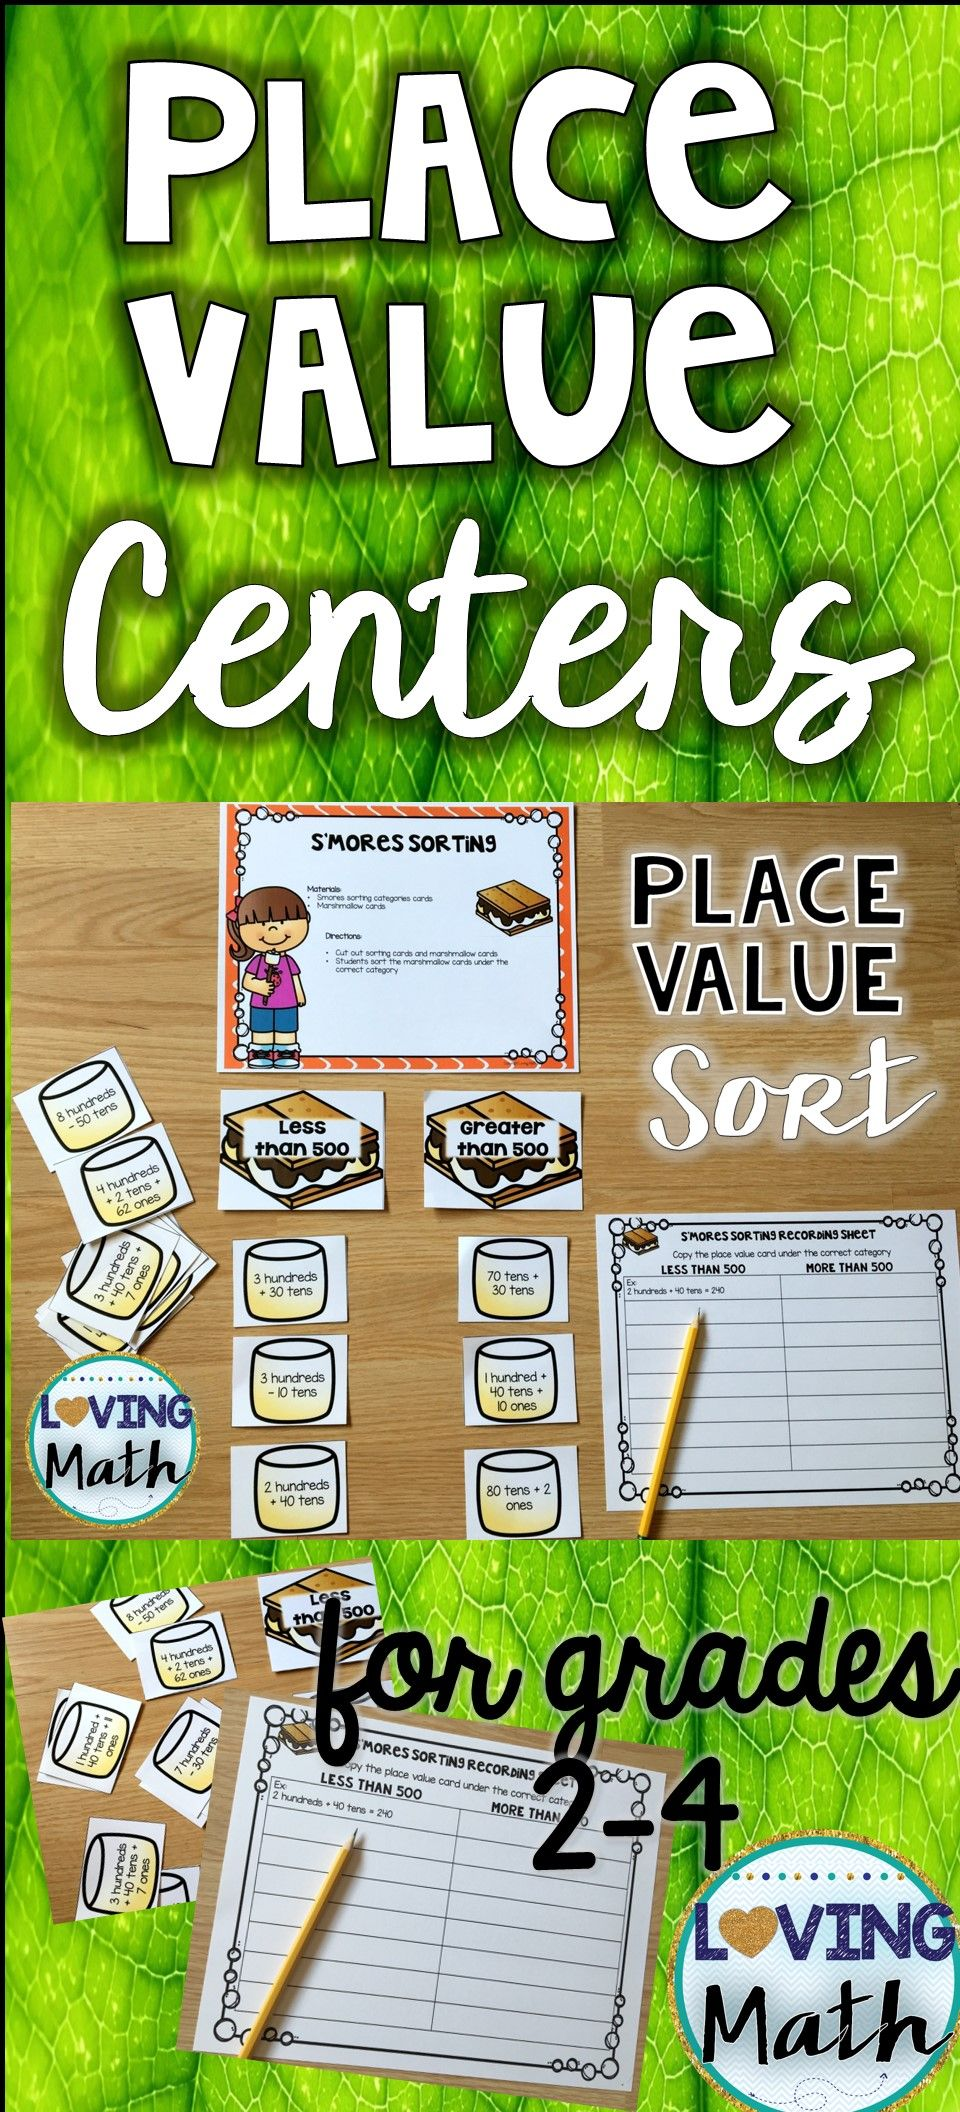 place value and rounding games and center activities math games math place values math centers. Black Bedroom Furniture Sets. Home Design Ideas